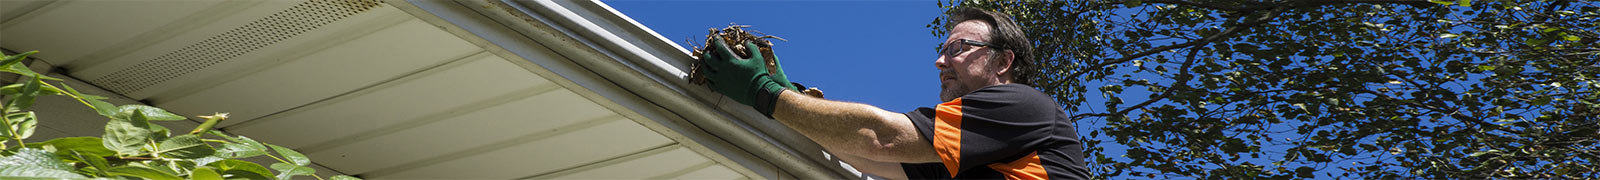 Tradie cleaning gutter